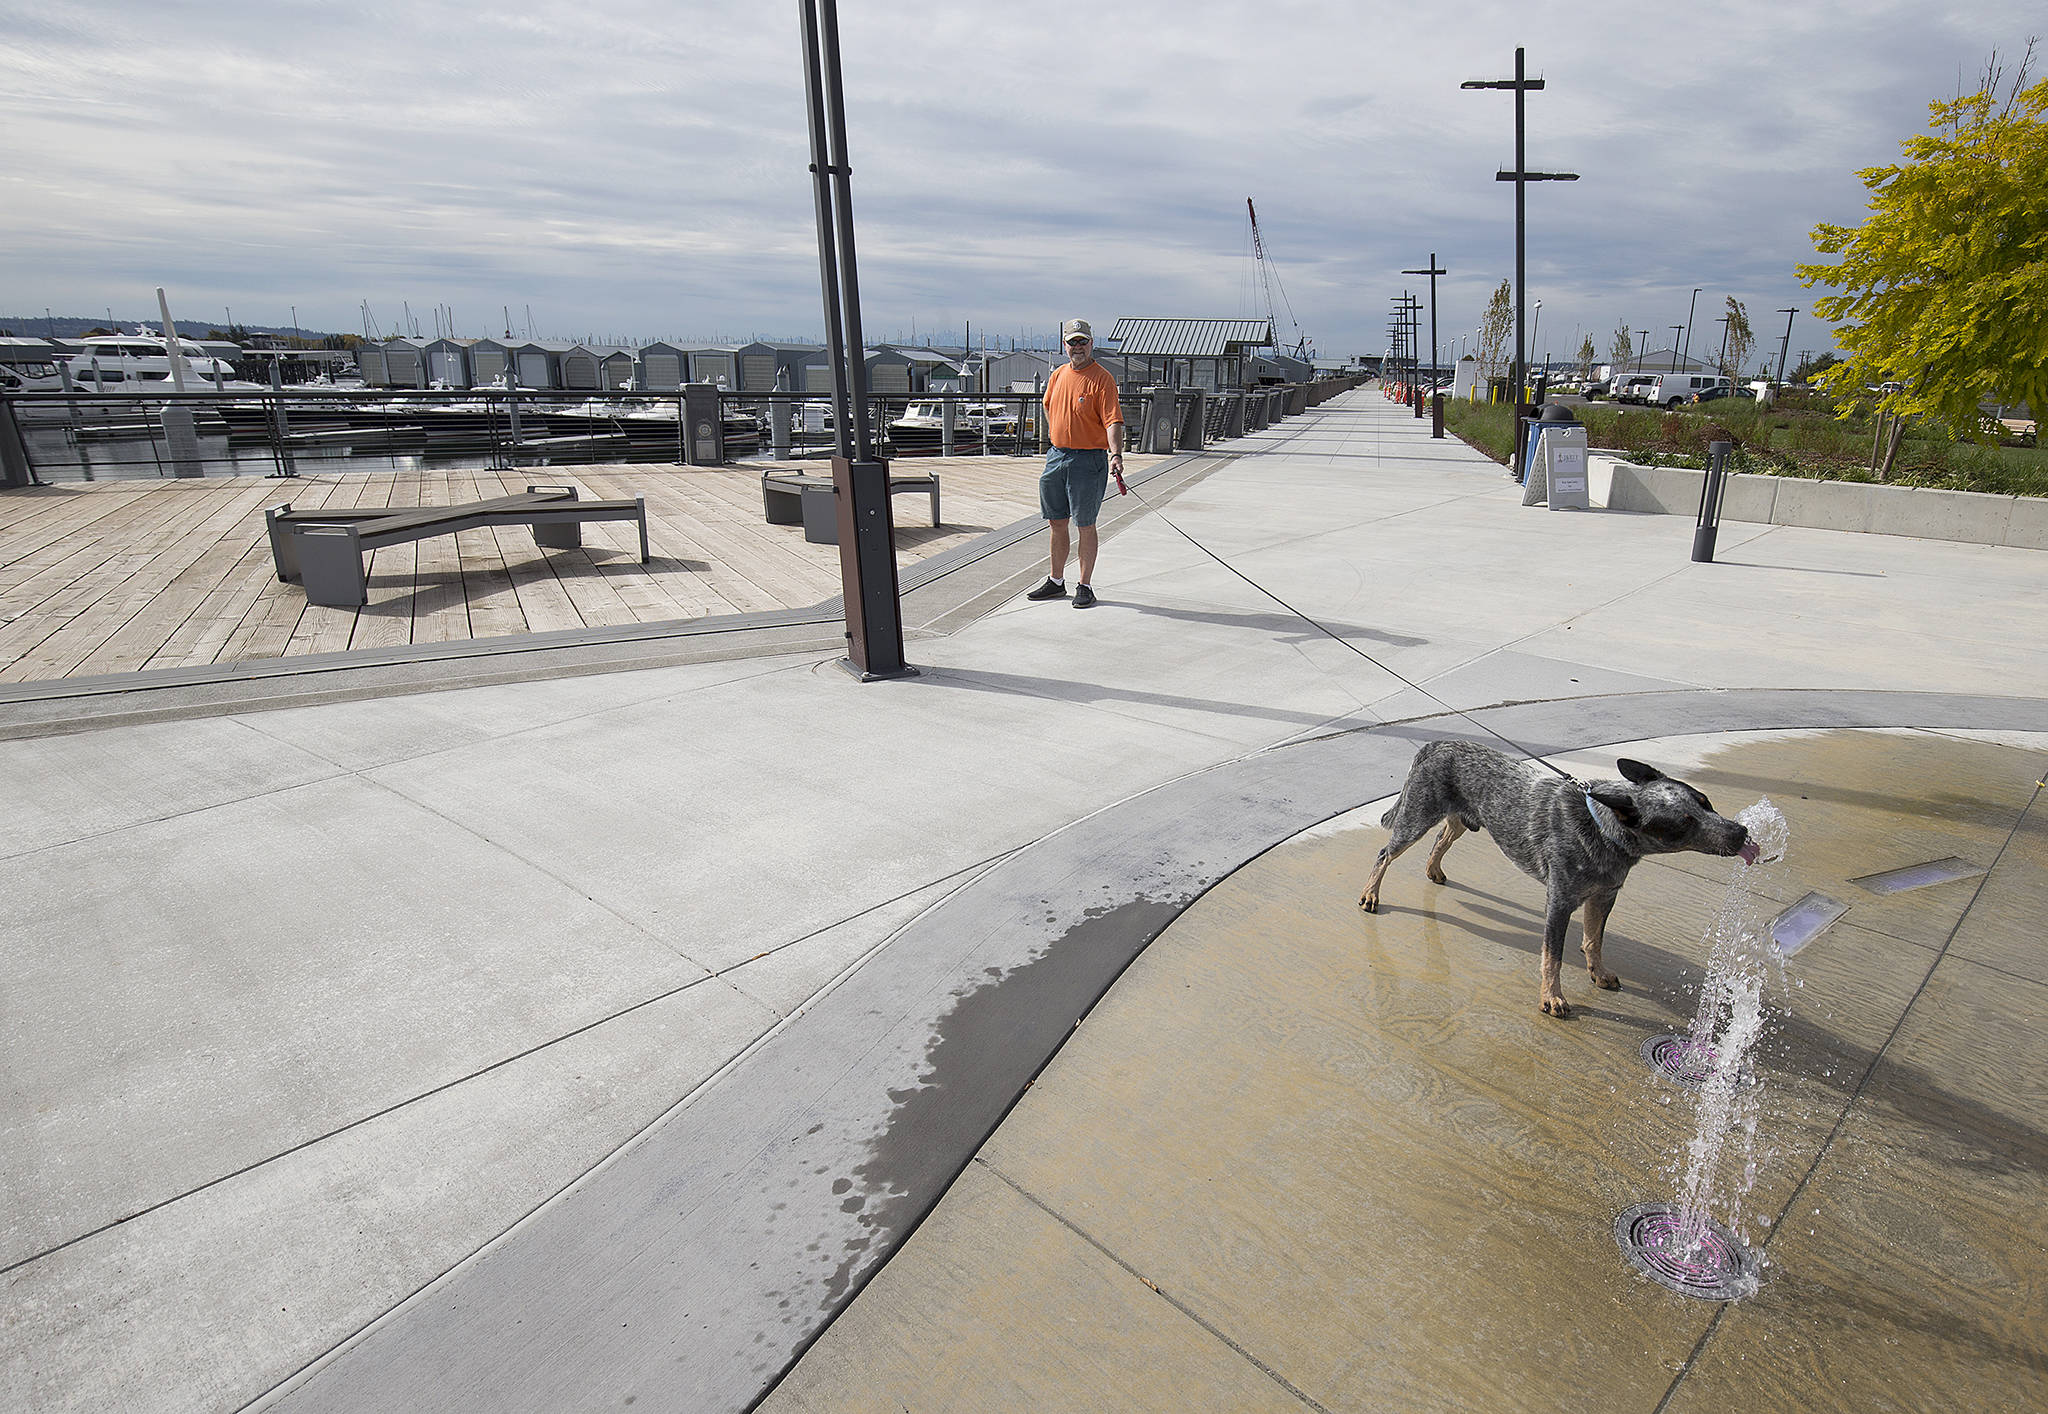 Pepper takes a drink from the new water fountain display while on a walk with his owner, Mike Williams, at the Port of Everett on Wednesday in Everett. The Boats Afloat Show, which has been held on Seattle's South Lake Union for some 30 years, is relocating to the Port of Everett next fall. (Andy Bronson / The Herald)